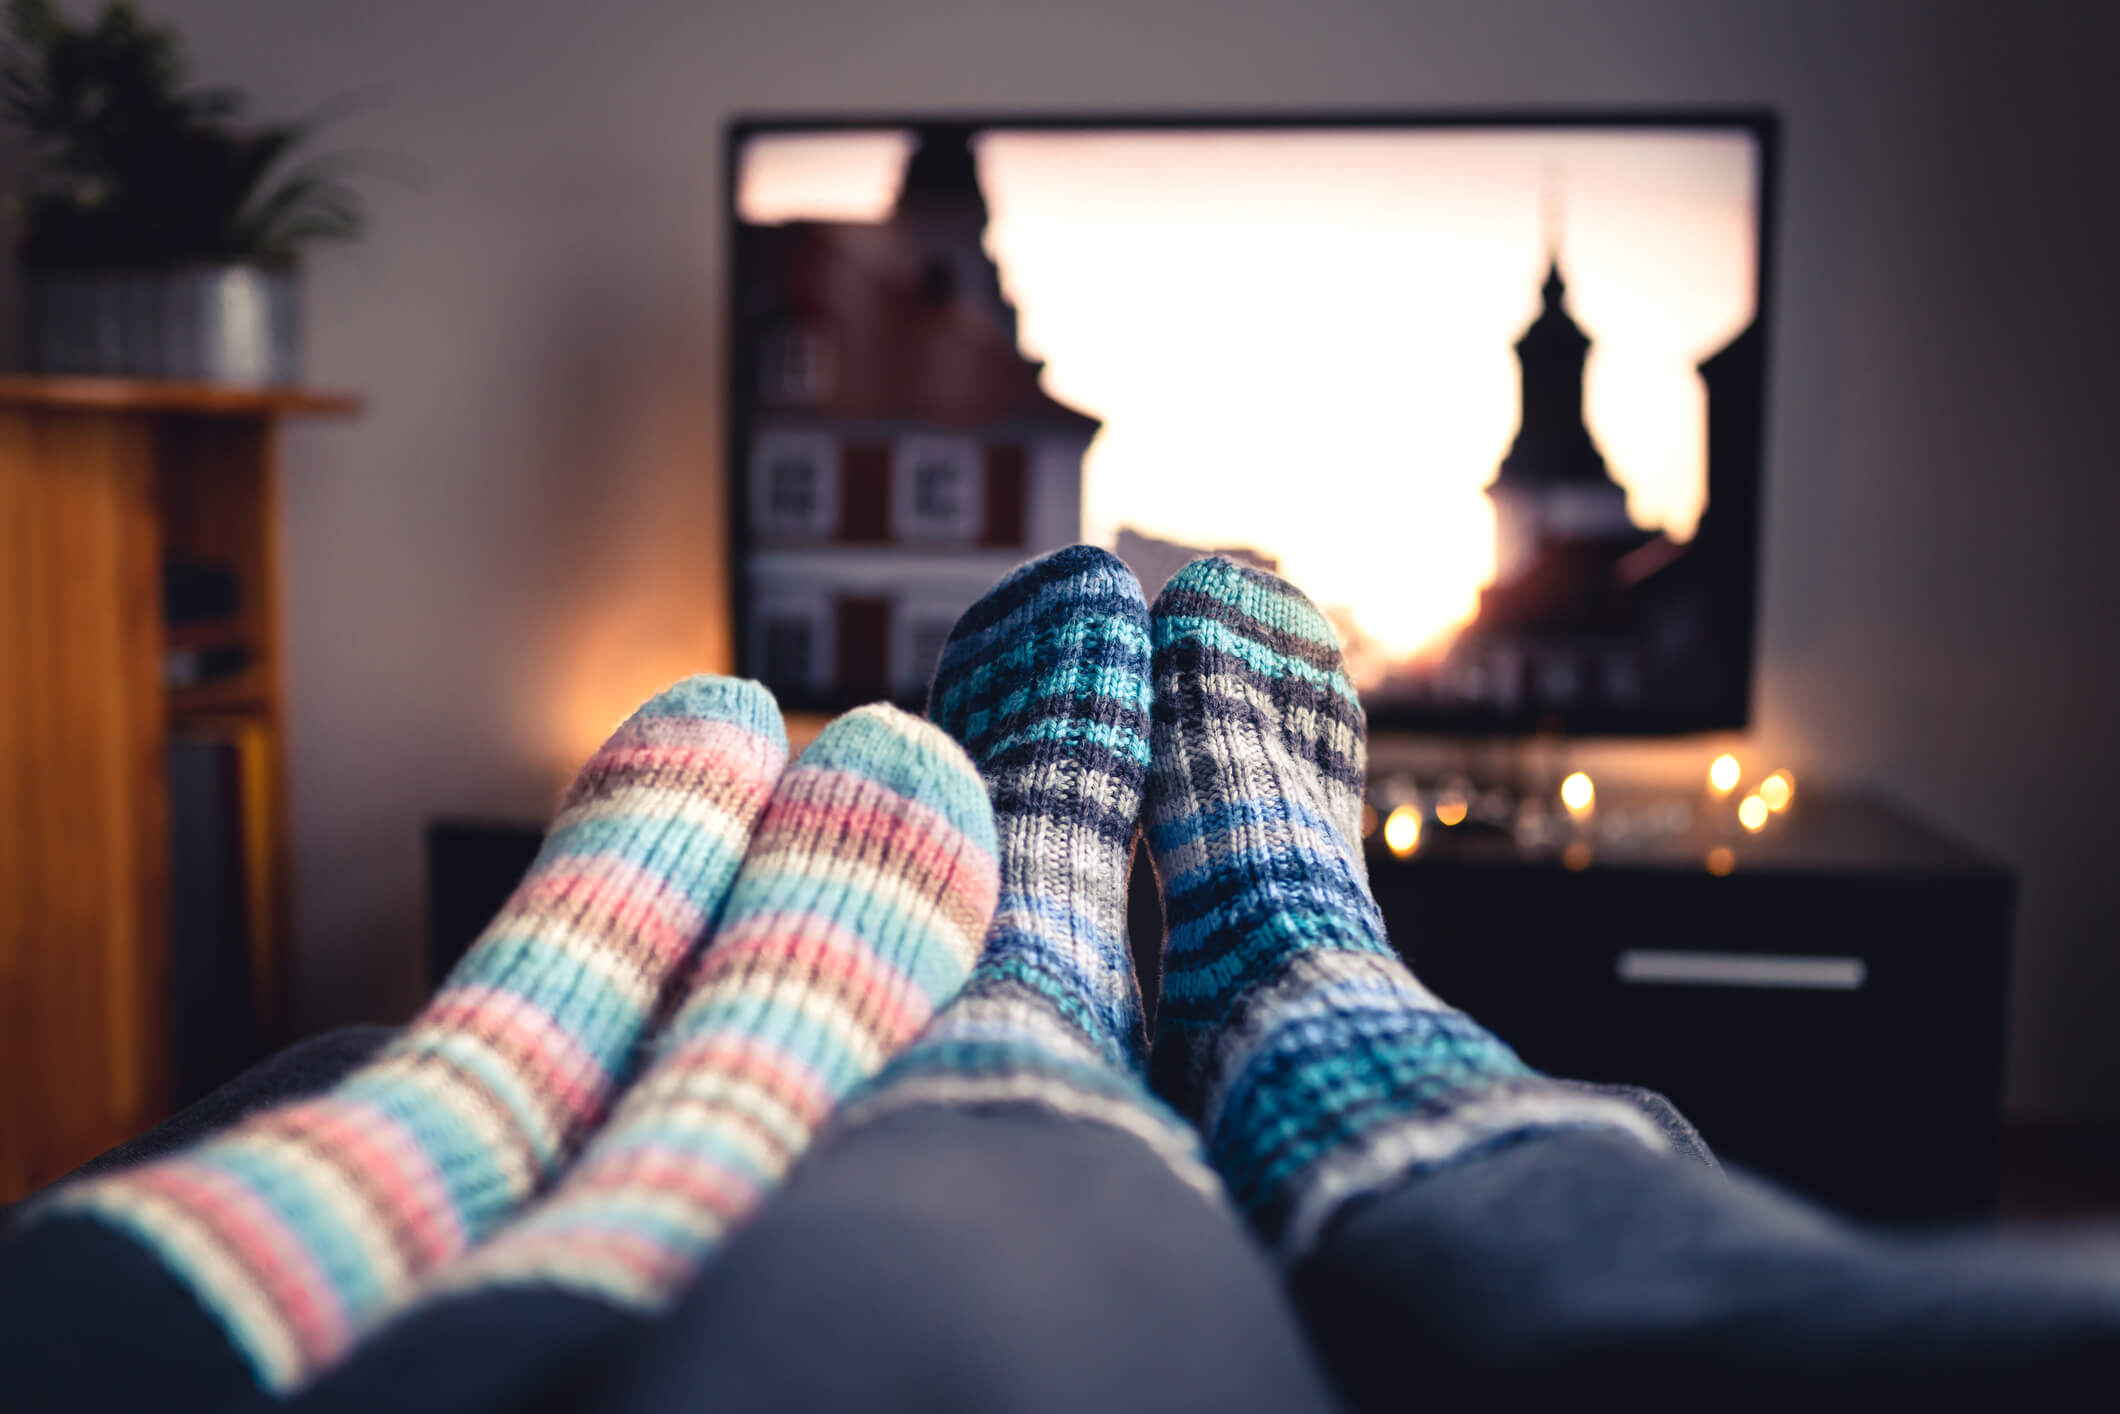 Photo of couples feet in coxy socks in front of TV while watching HBO